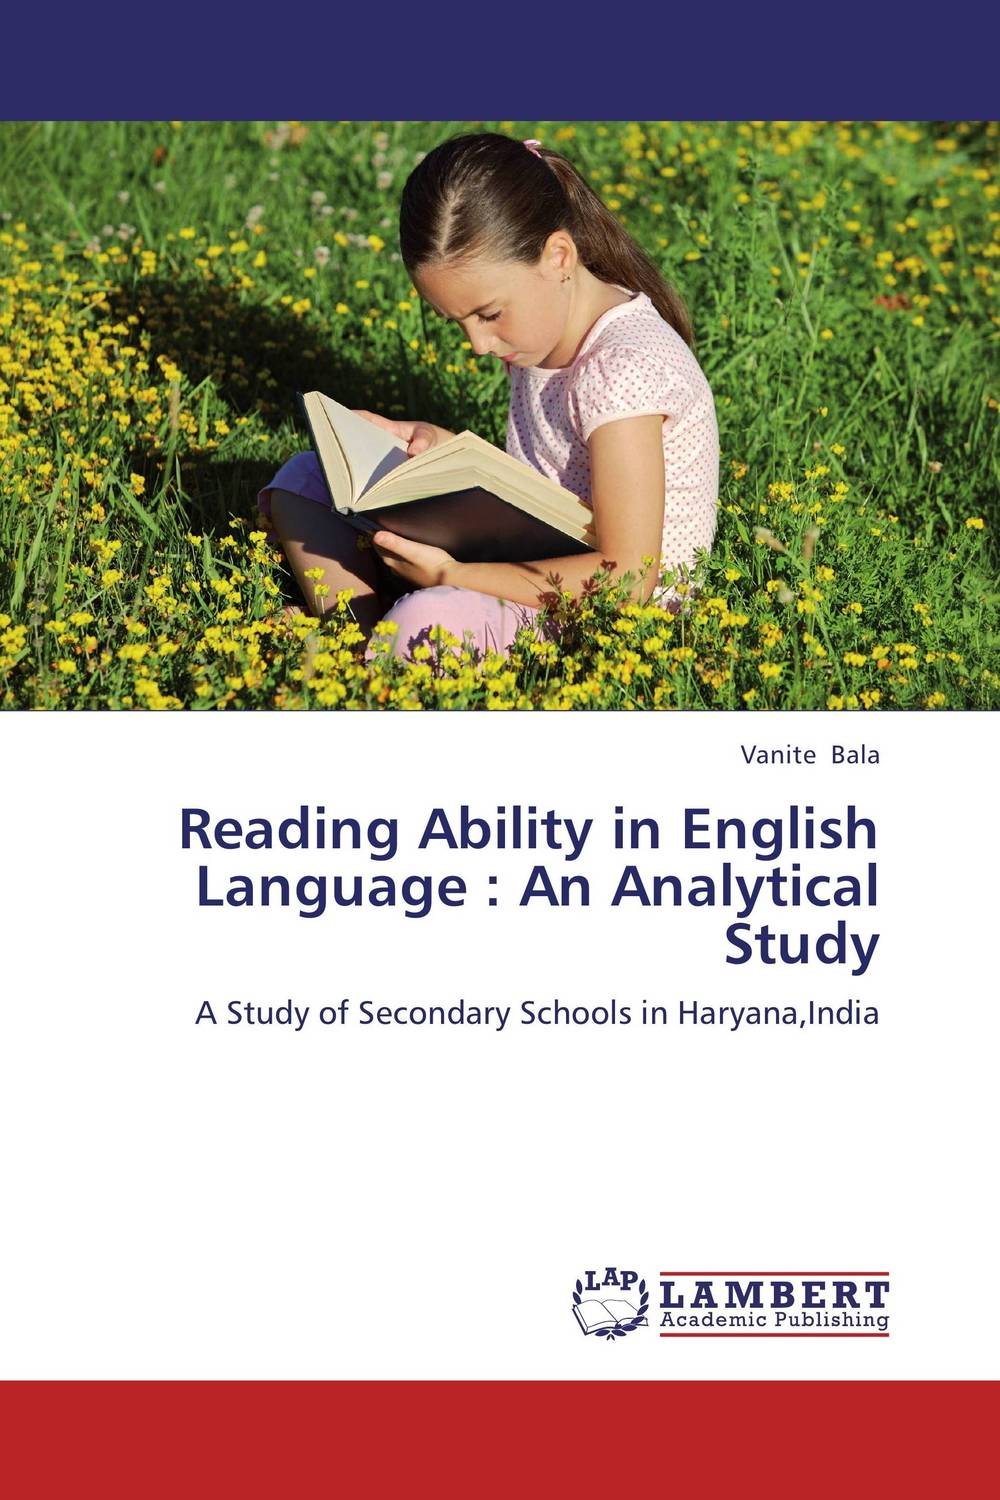 Reading Ability in English Language : An Analytical Study mastering english prepositions